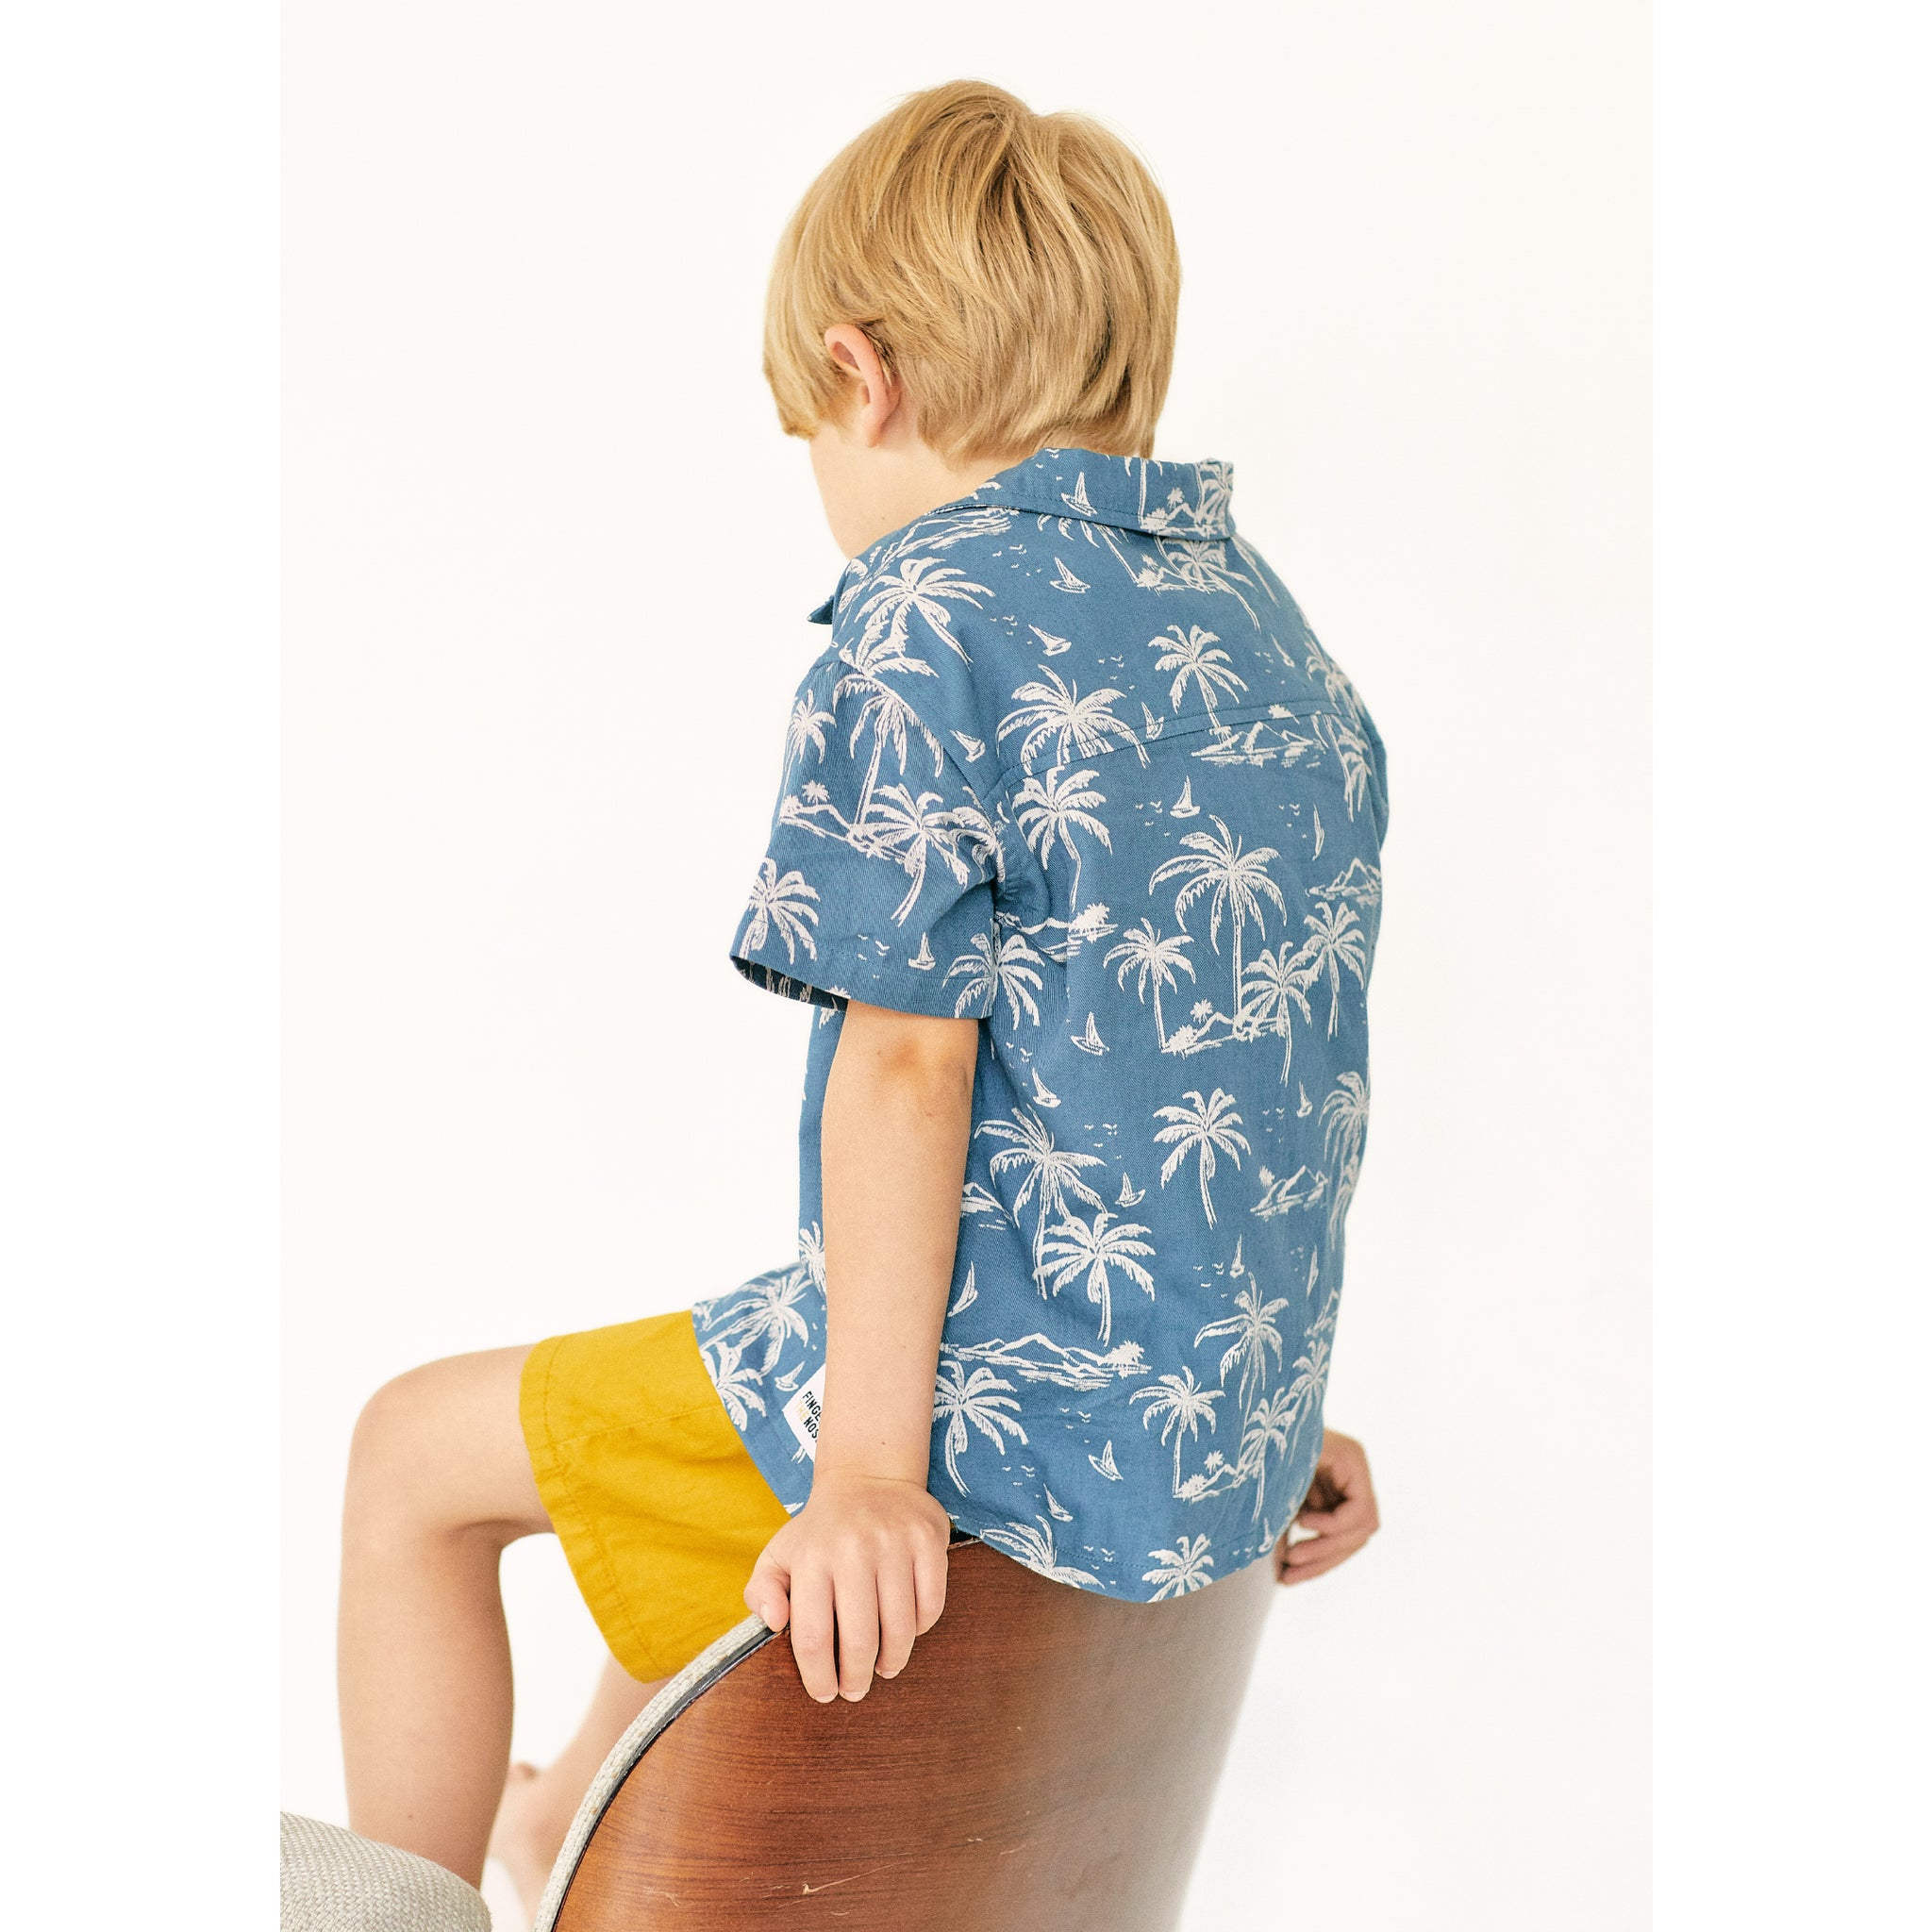 CHUCK Stone Blue Palms - Short Sleevess Shirt 3